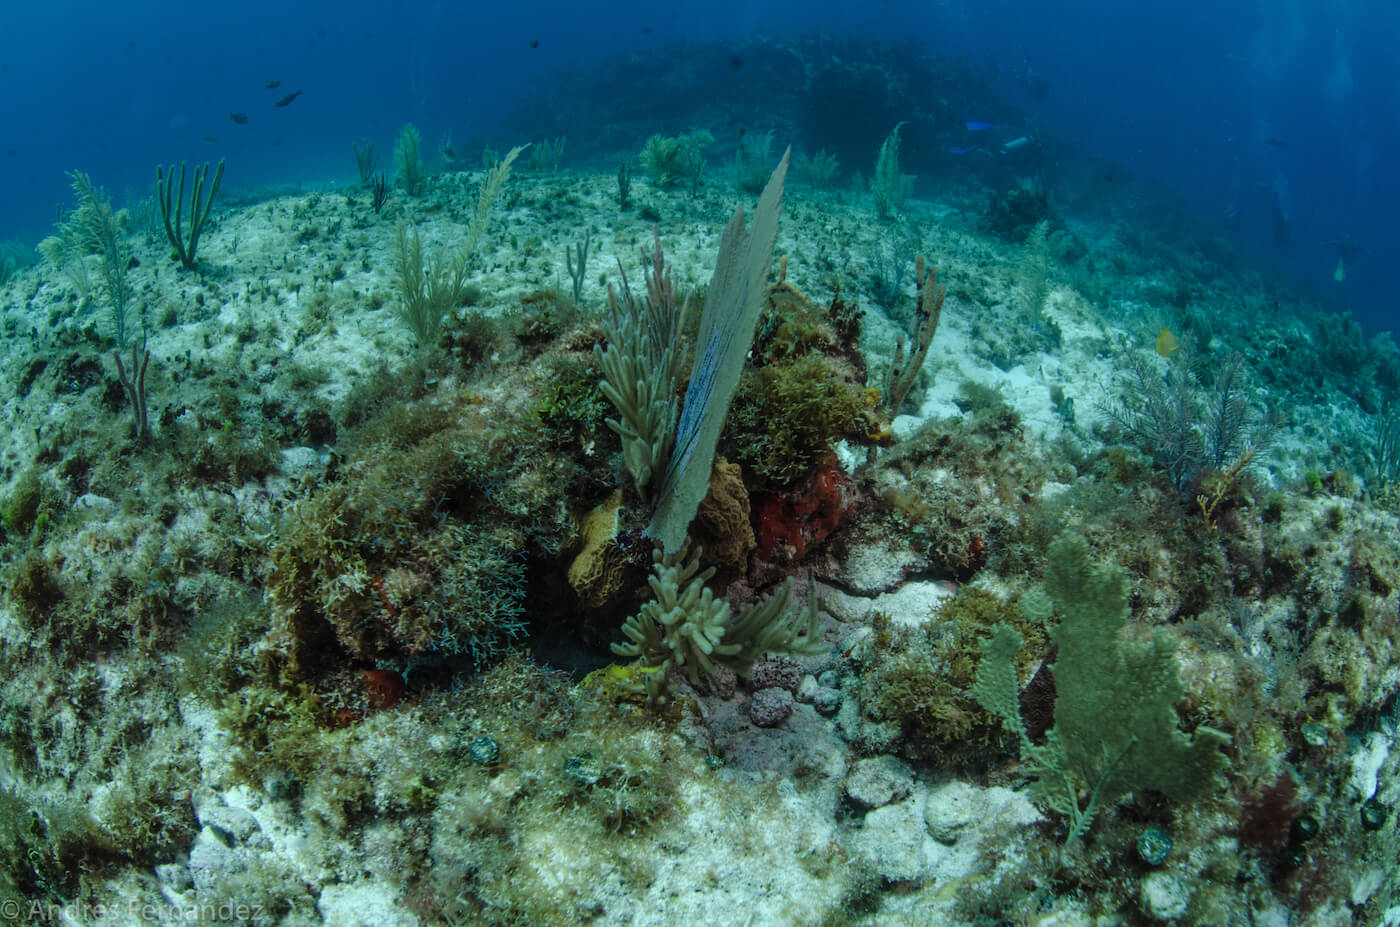 Isla Mujeres Coral Reefs Squalo Adventures Scuba Diving Snorkeling-12